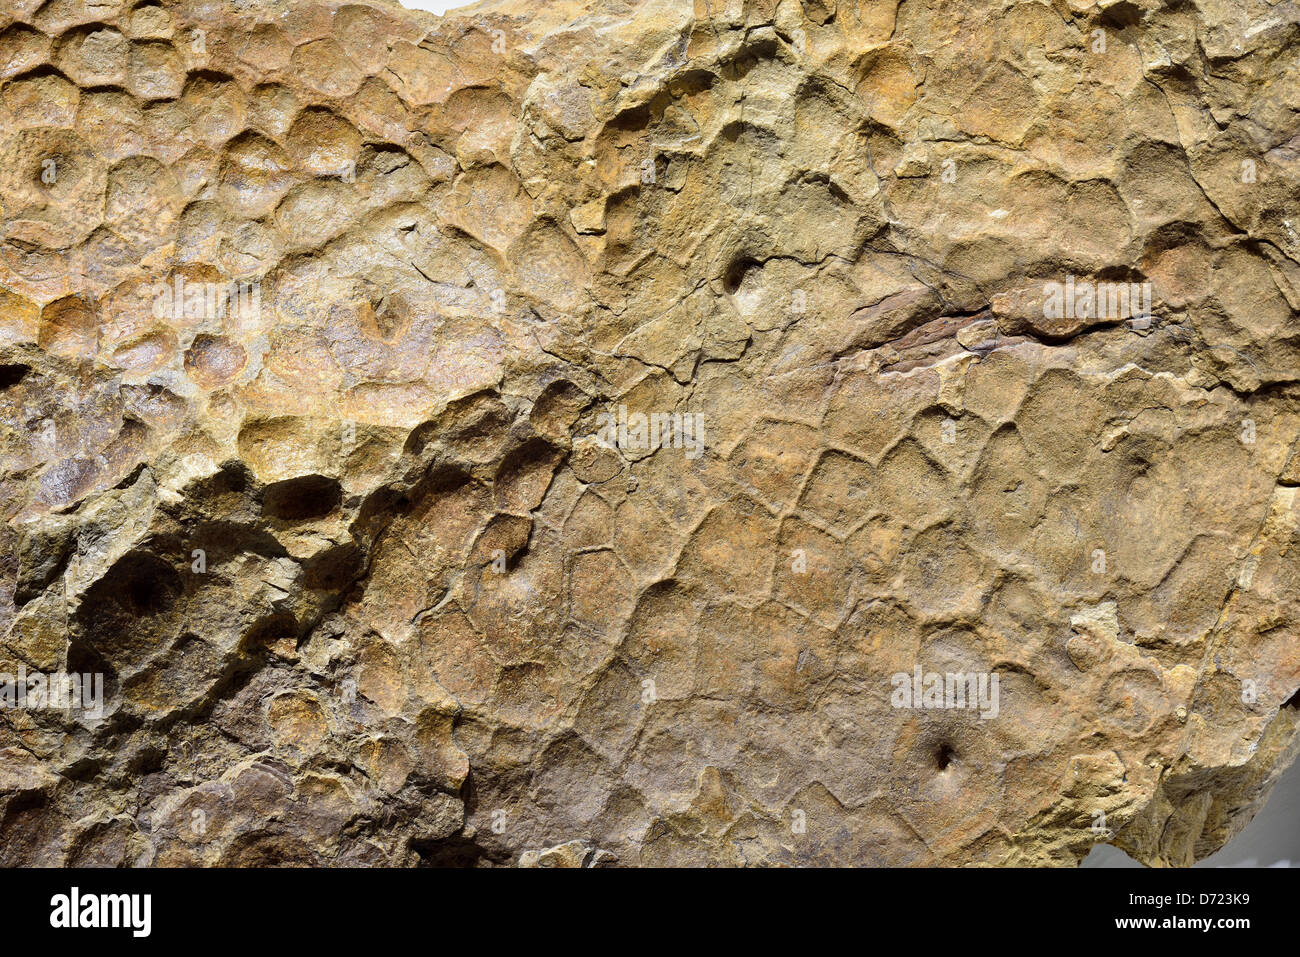 Fossilized imprint of Triceratops dinosaur skin. - Stock Image